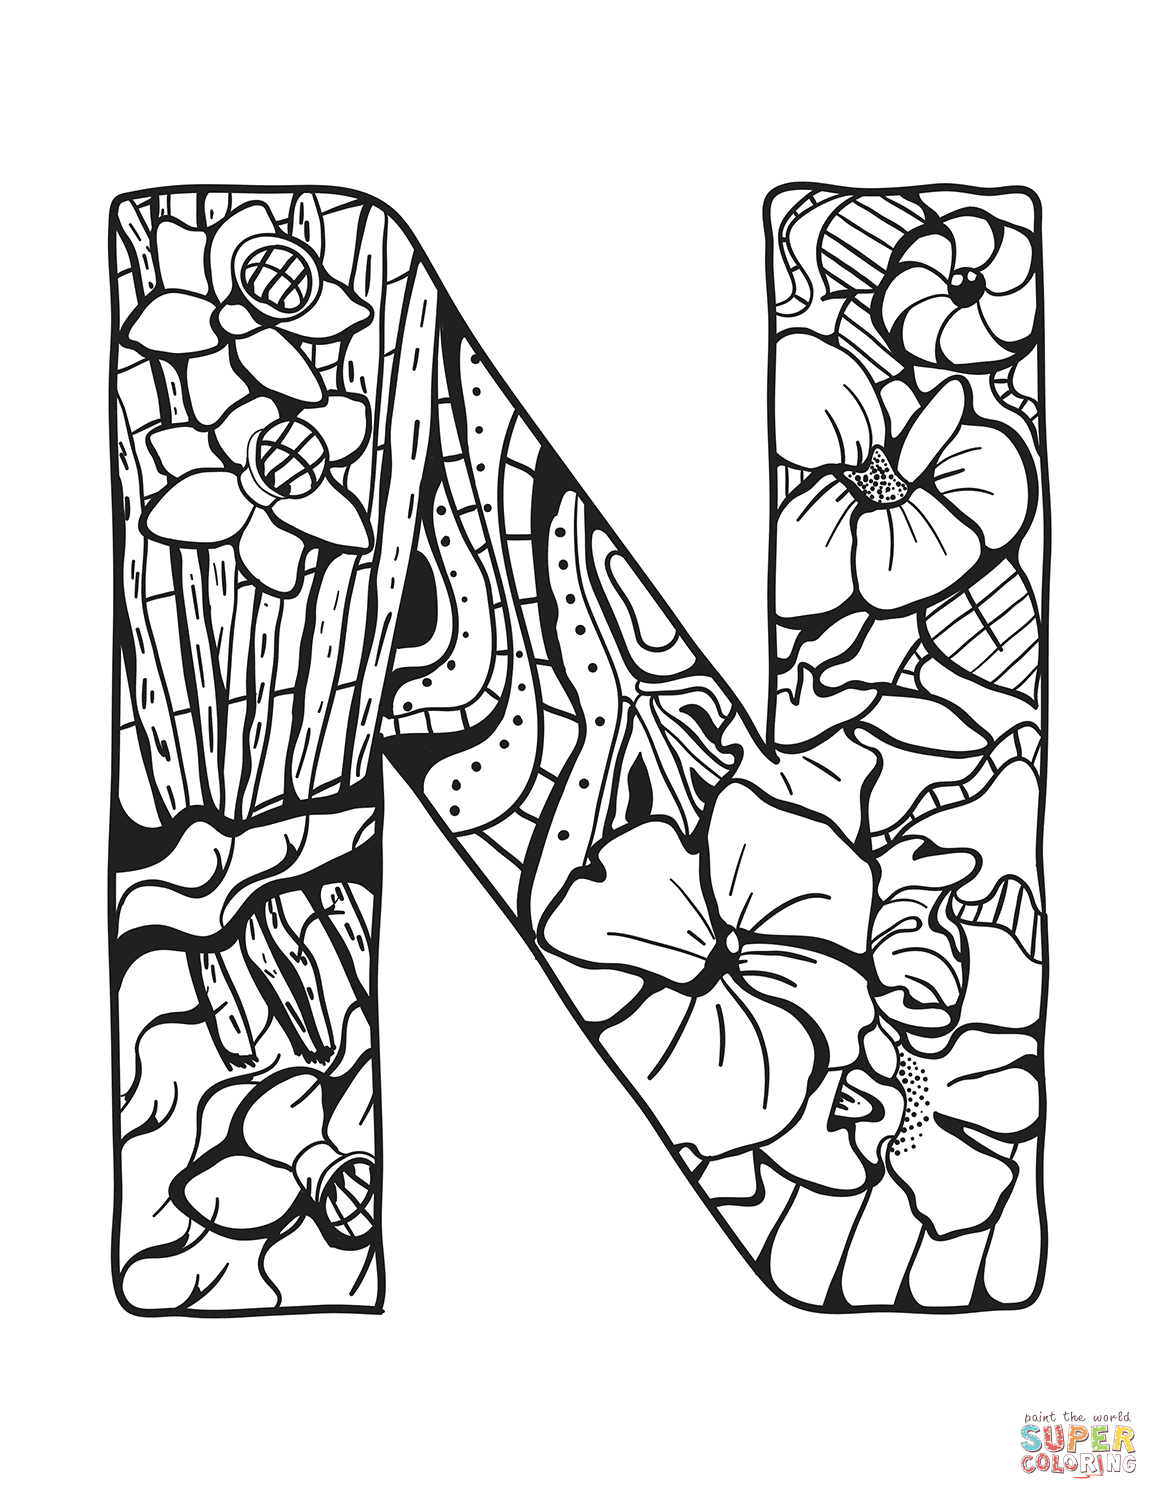 letter n coloring pages for adults items similar to letter n coloring page for adults pages for adults letter coloring n